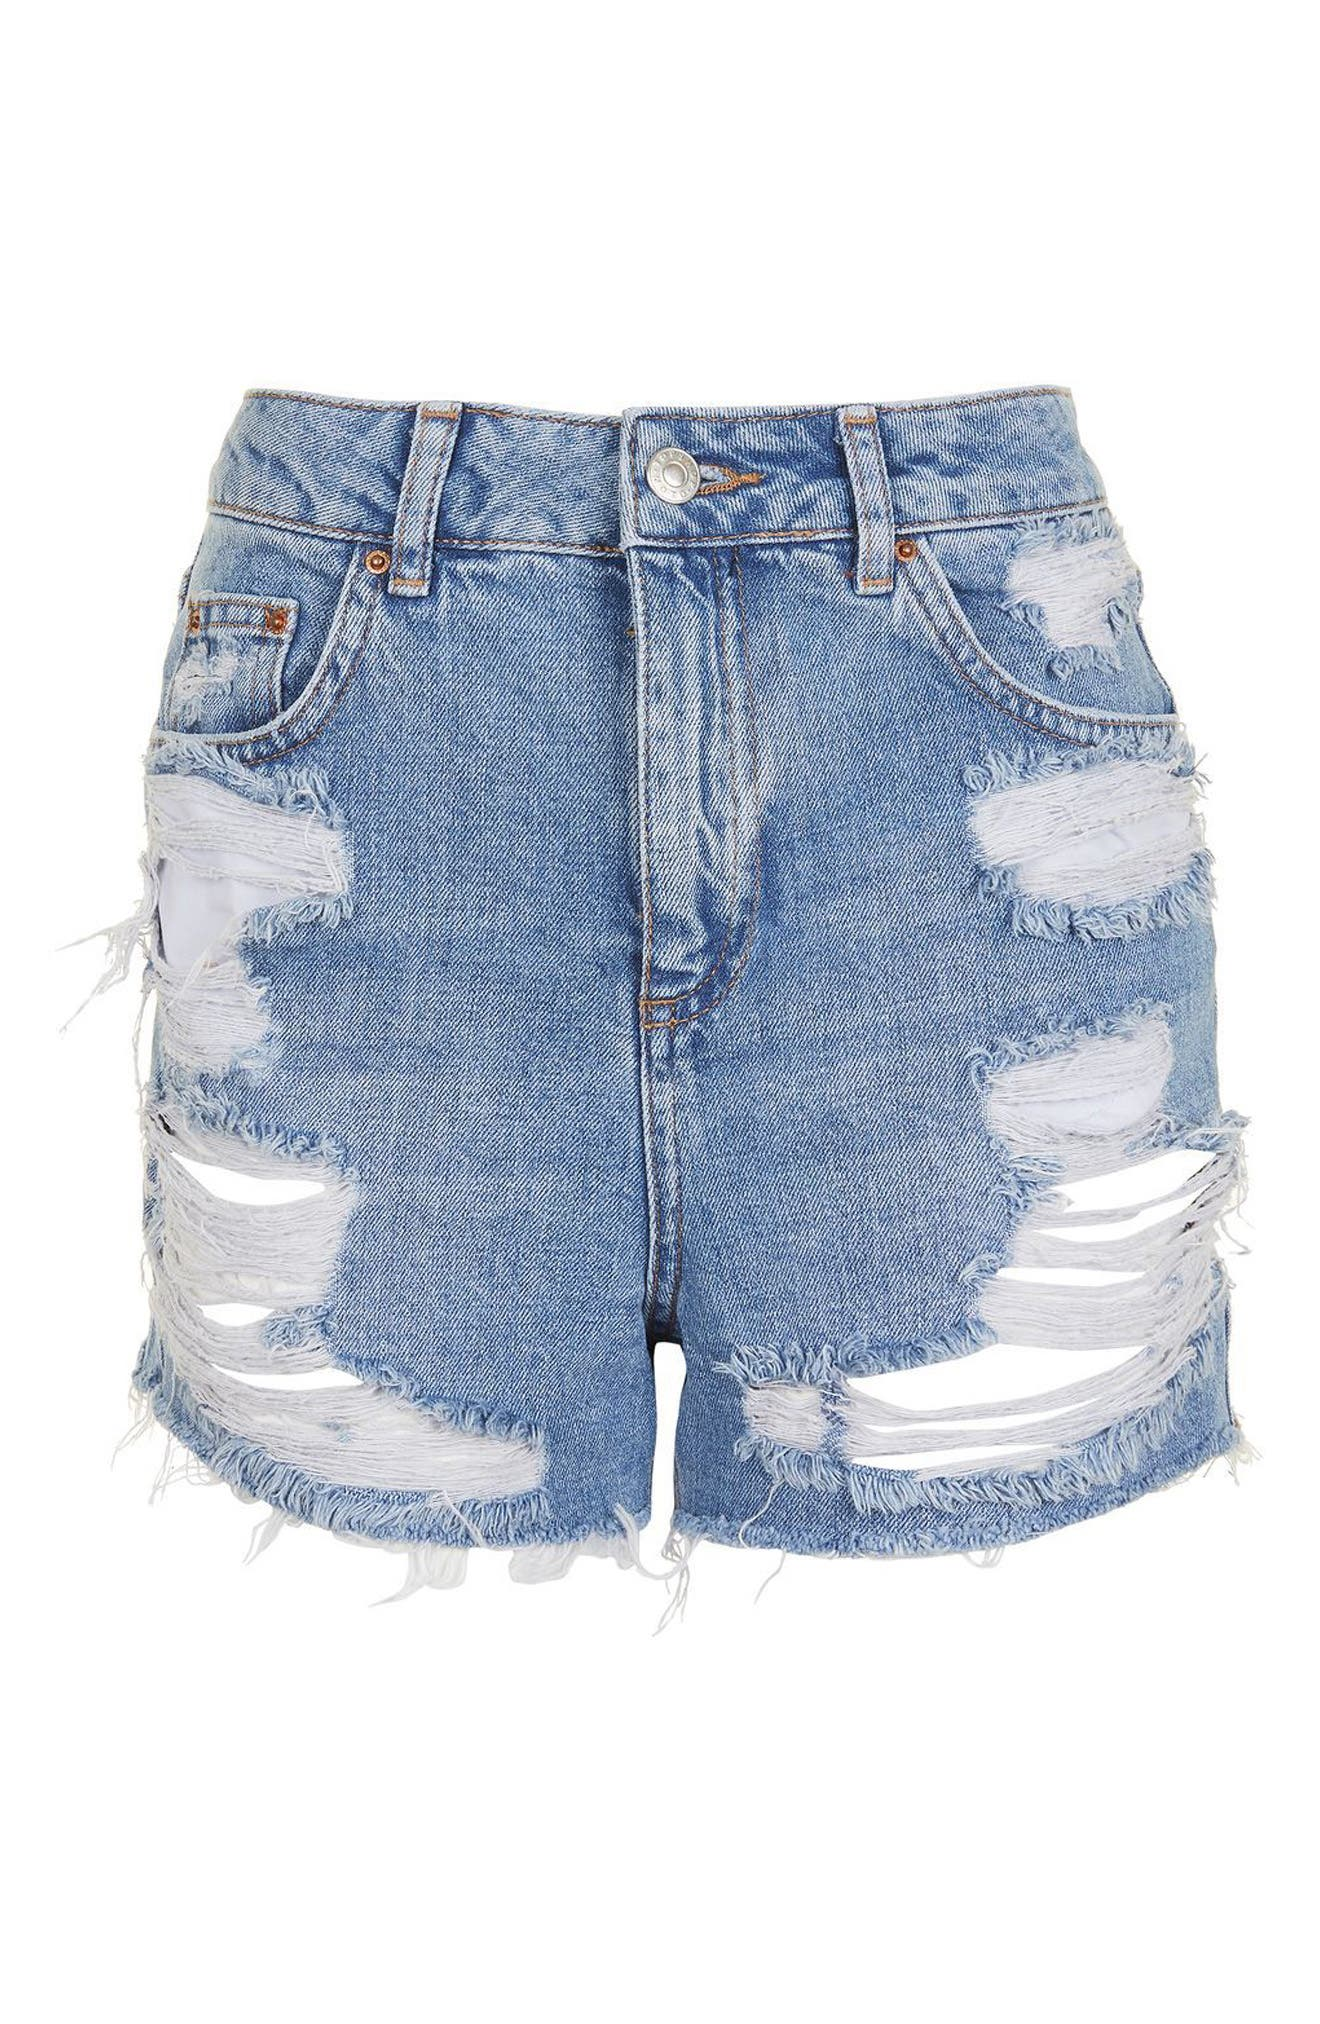 Ripped Mom Shorts,                             Alternate thumbnail 4, color,                             Midtone Blue